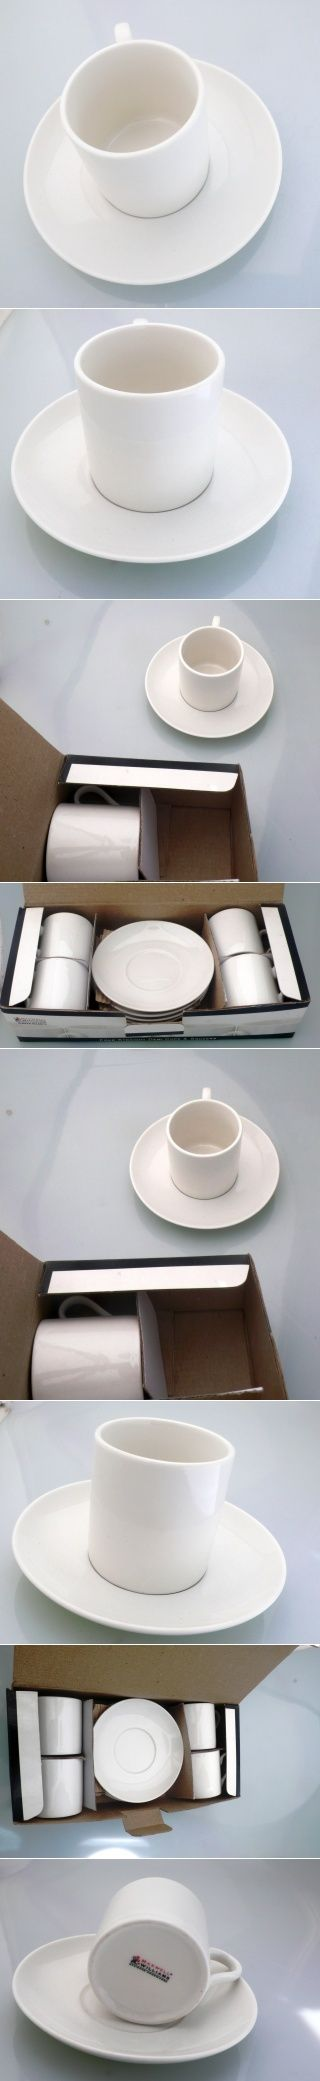 coffe cups and saucers maxwell ebay shop